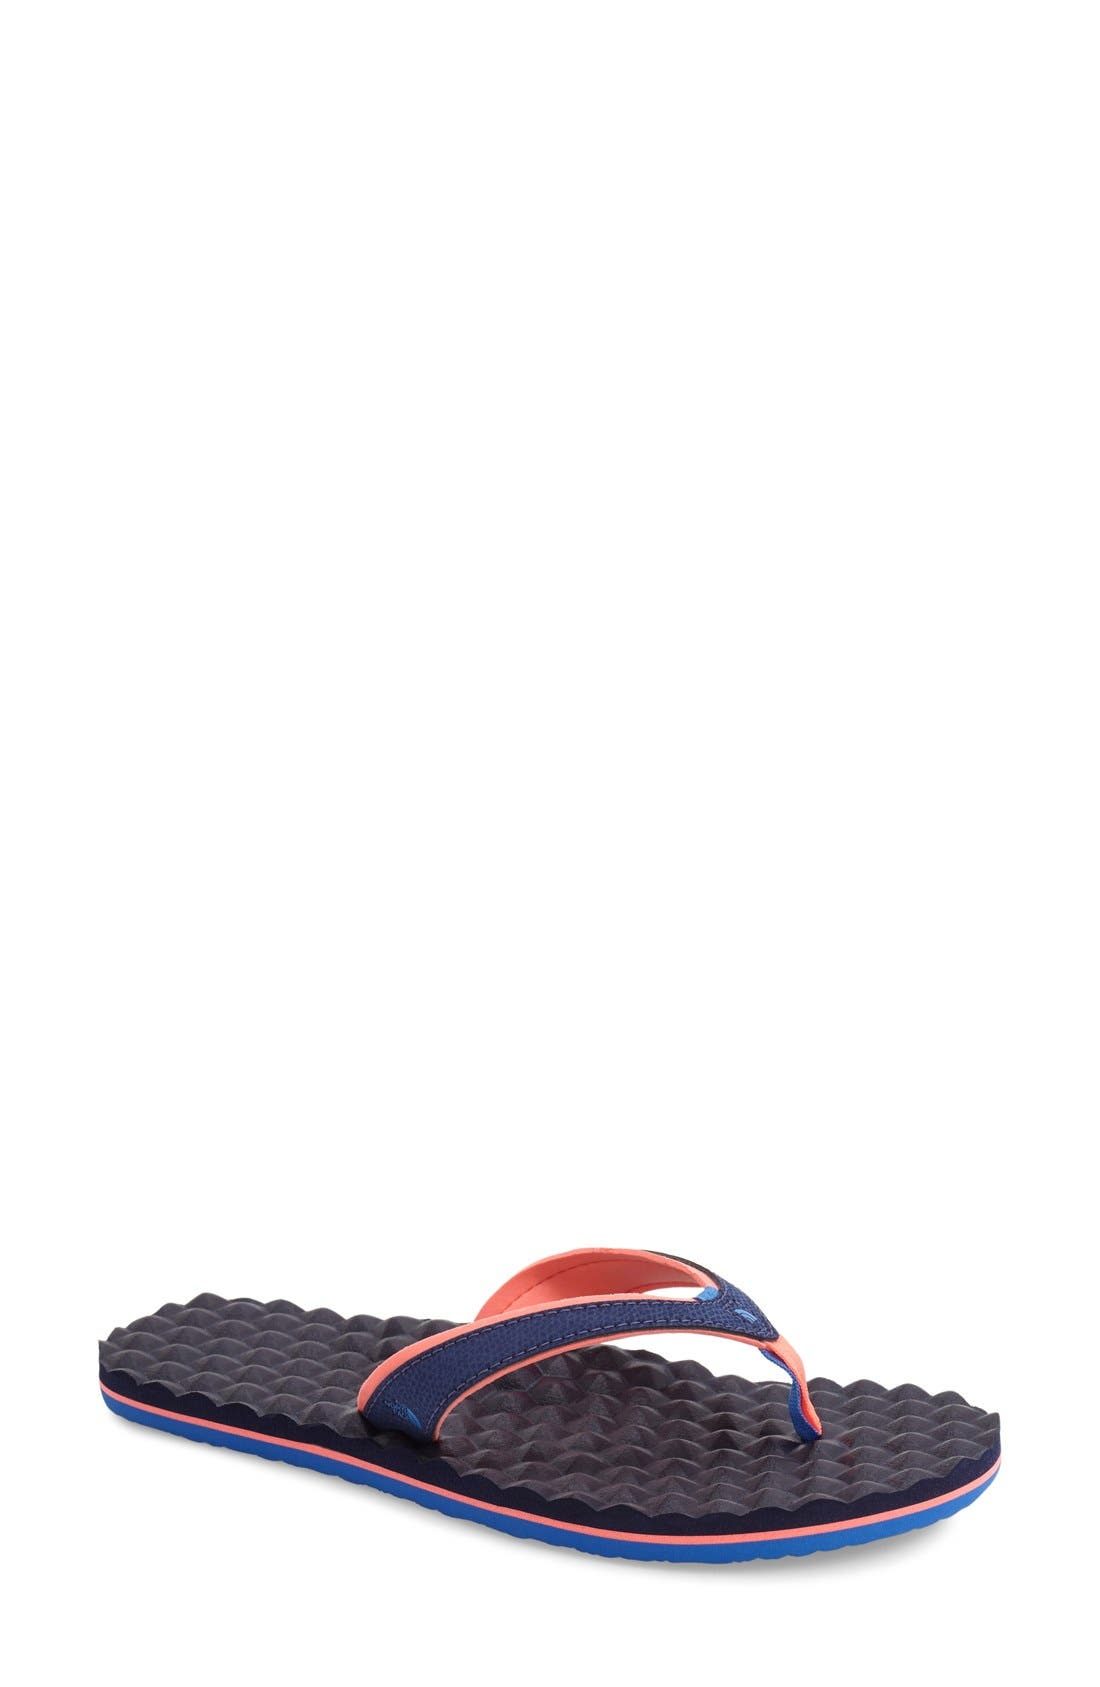 Main Image - The North Face 'Base Camp - Mini' Flip Flop